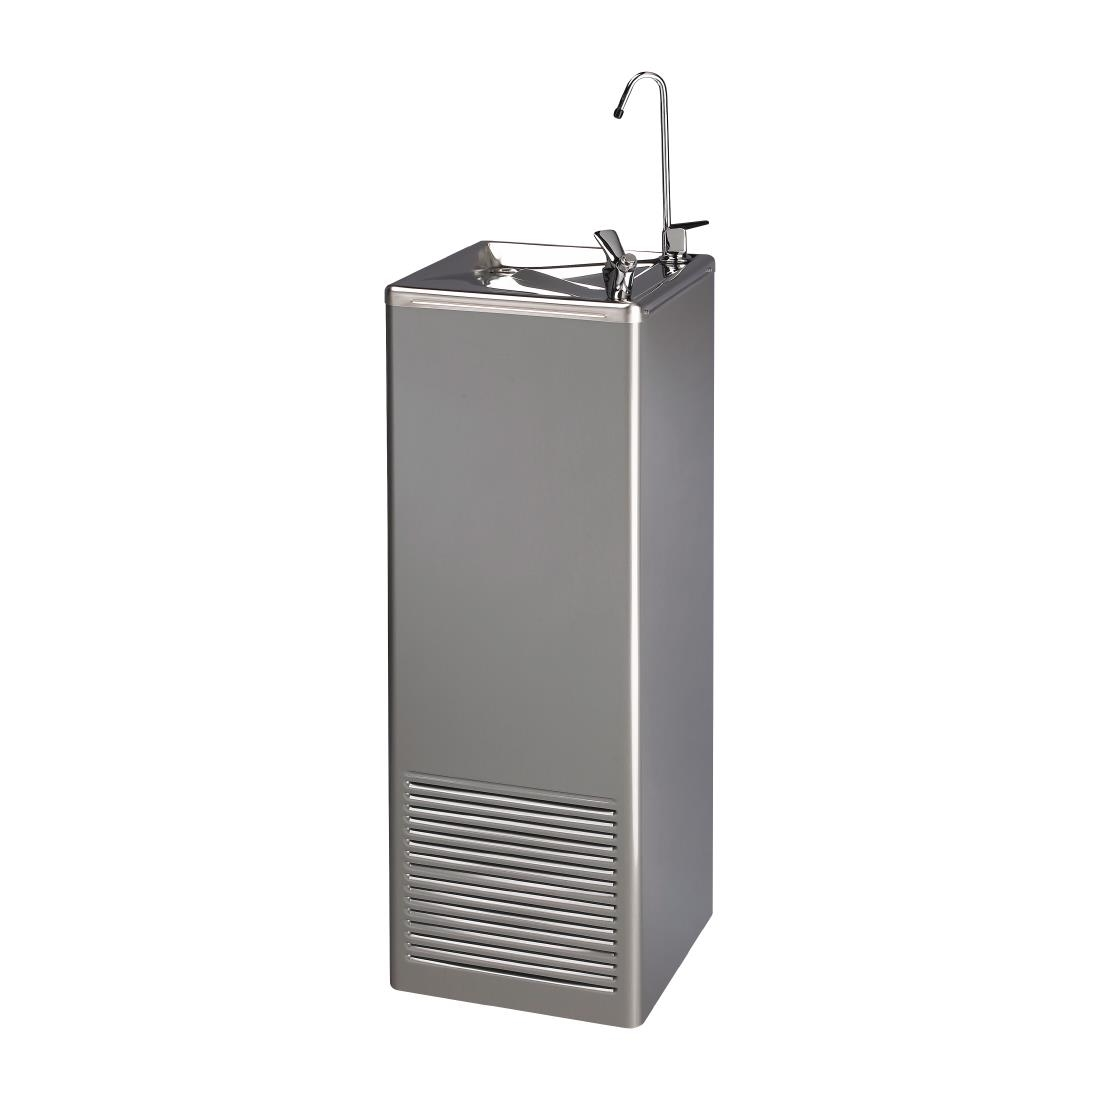 Image of Cosmetal River Freestanding Water Fountain Machine Only